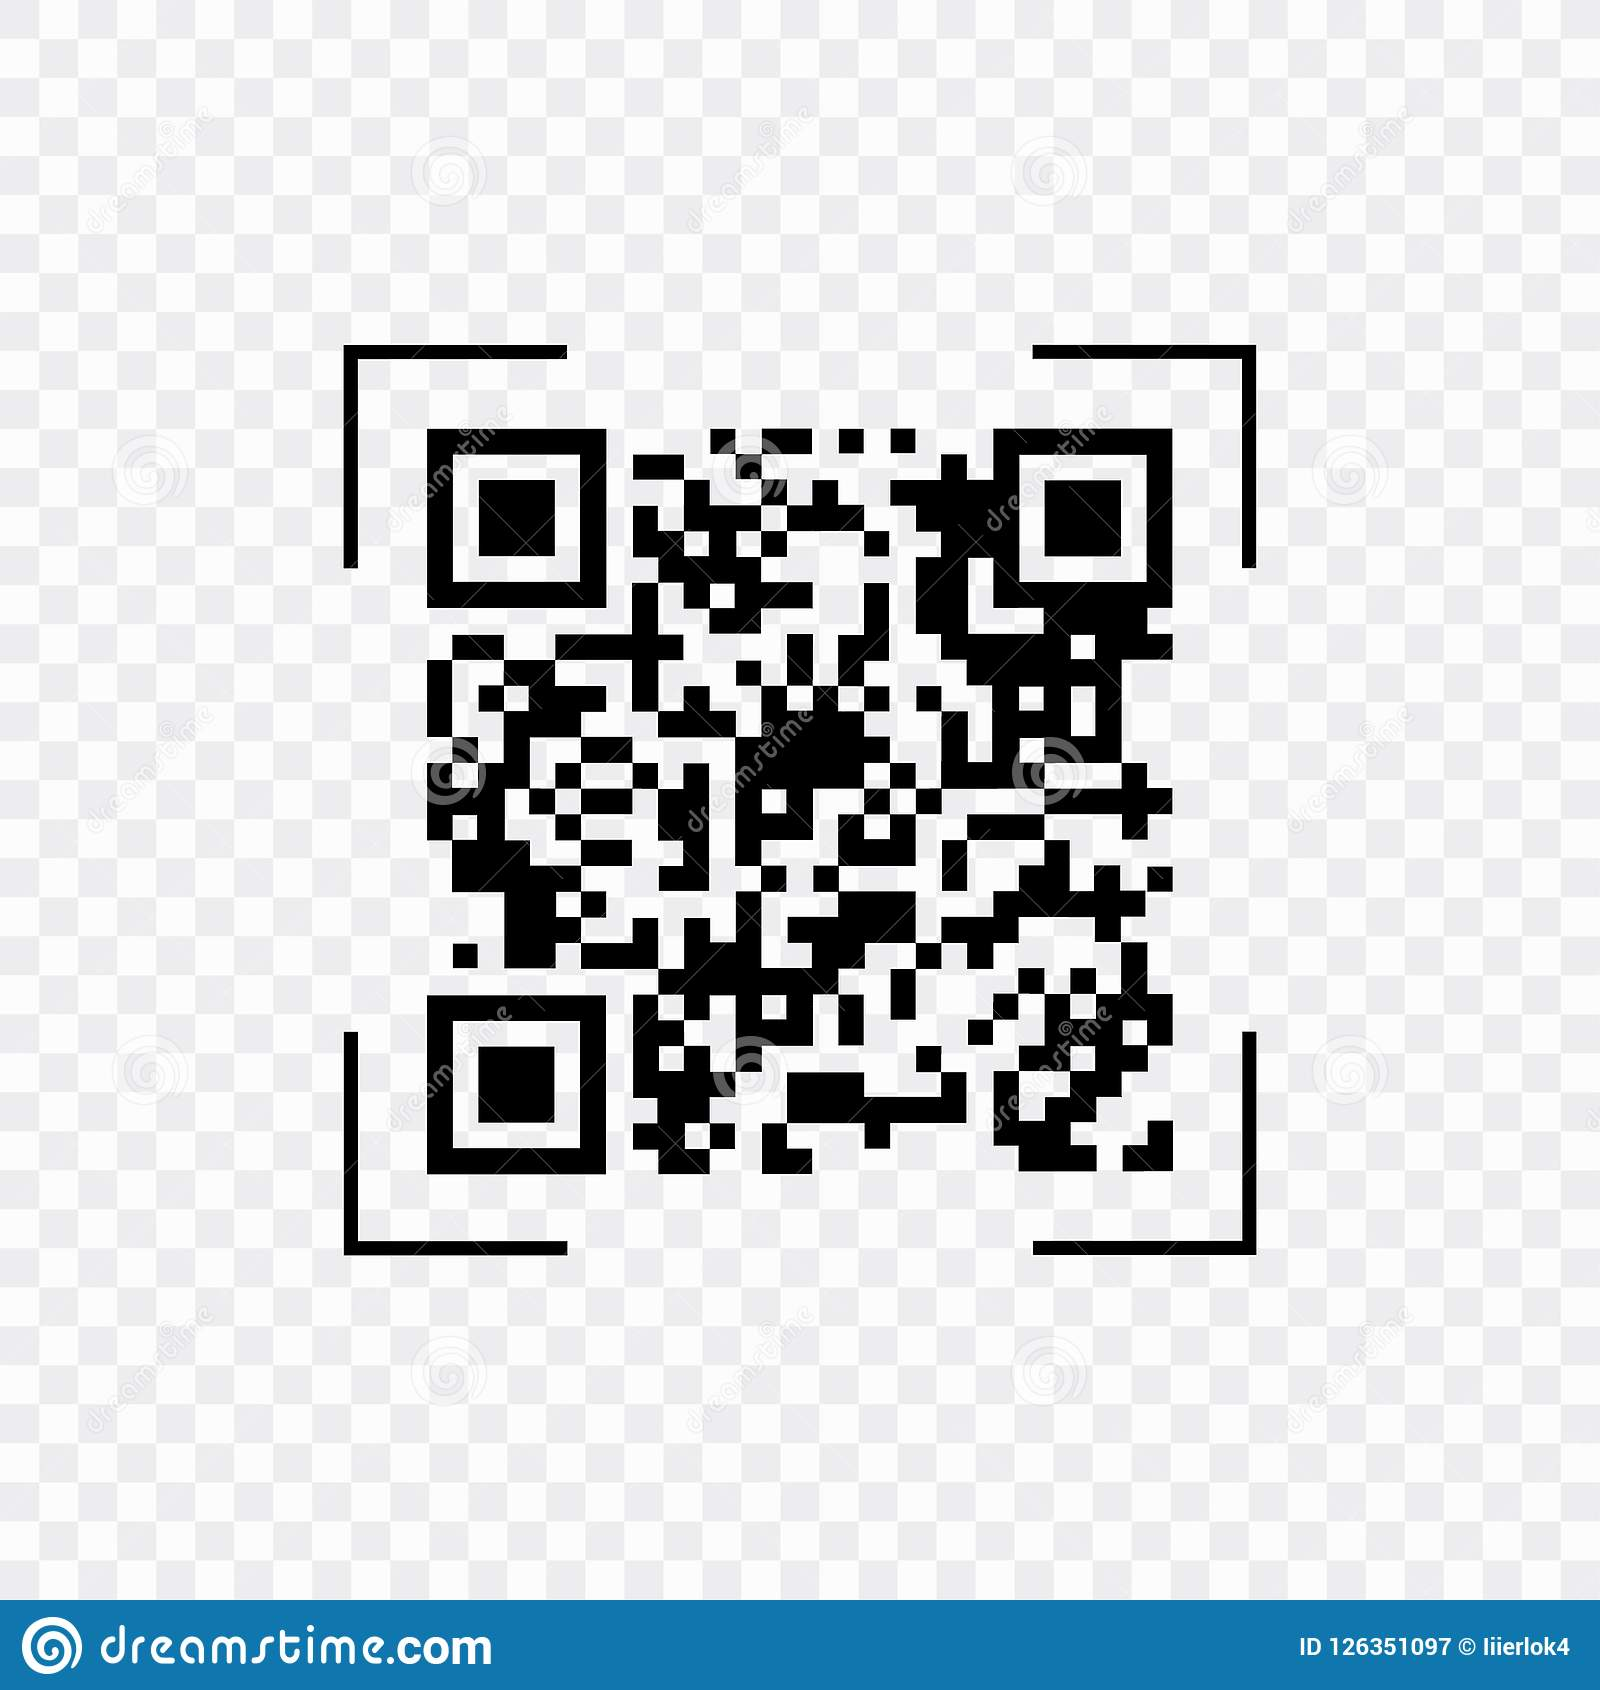 Scan QR Code, Symbol, App  Electronic , Digital Technology, Barcode